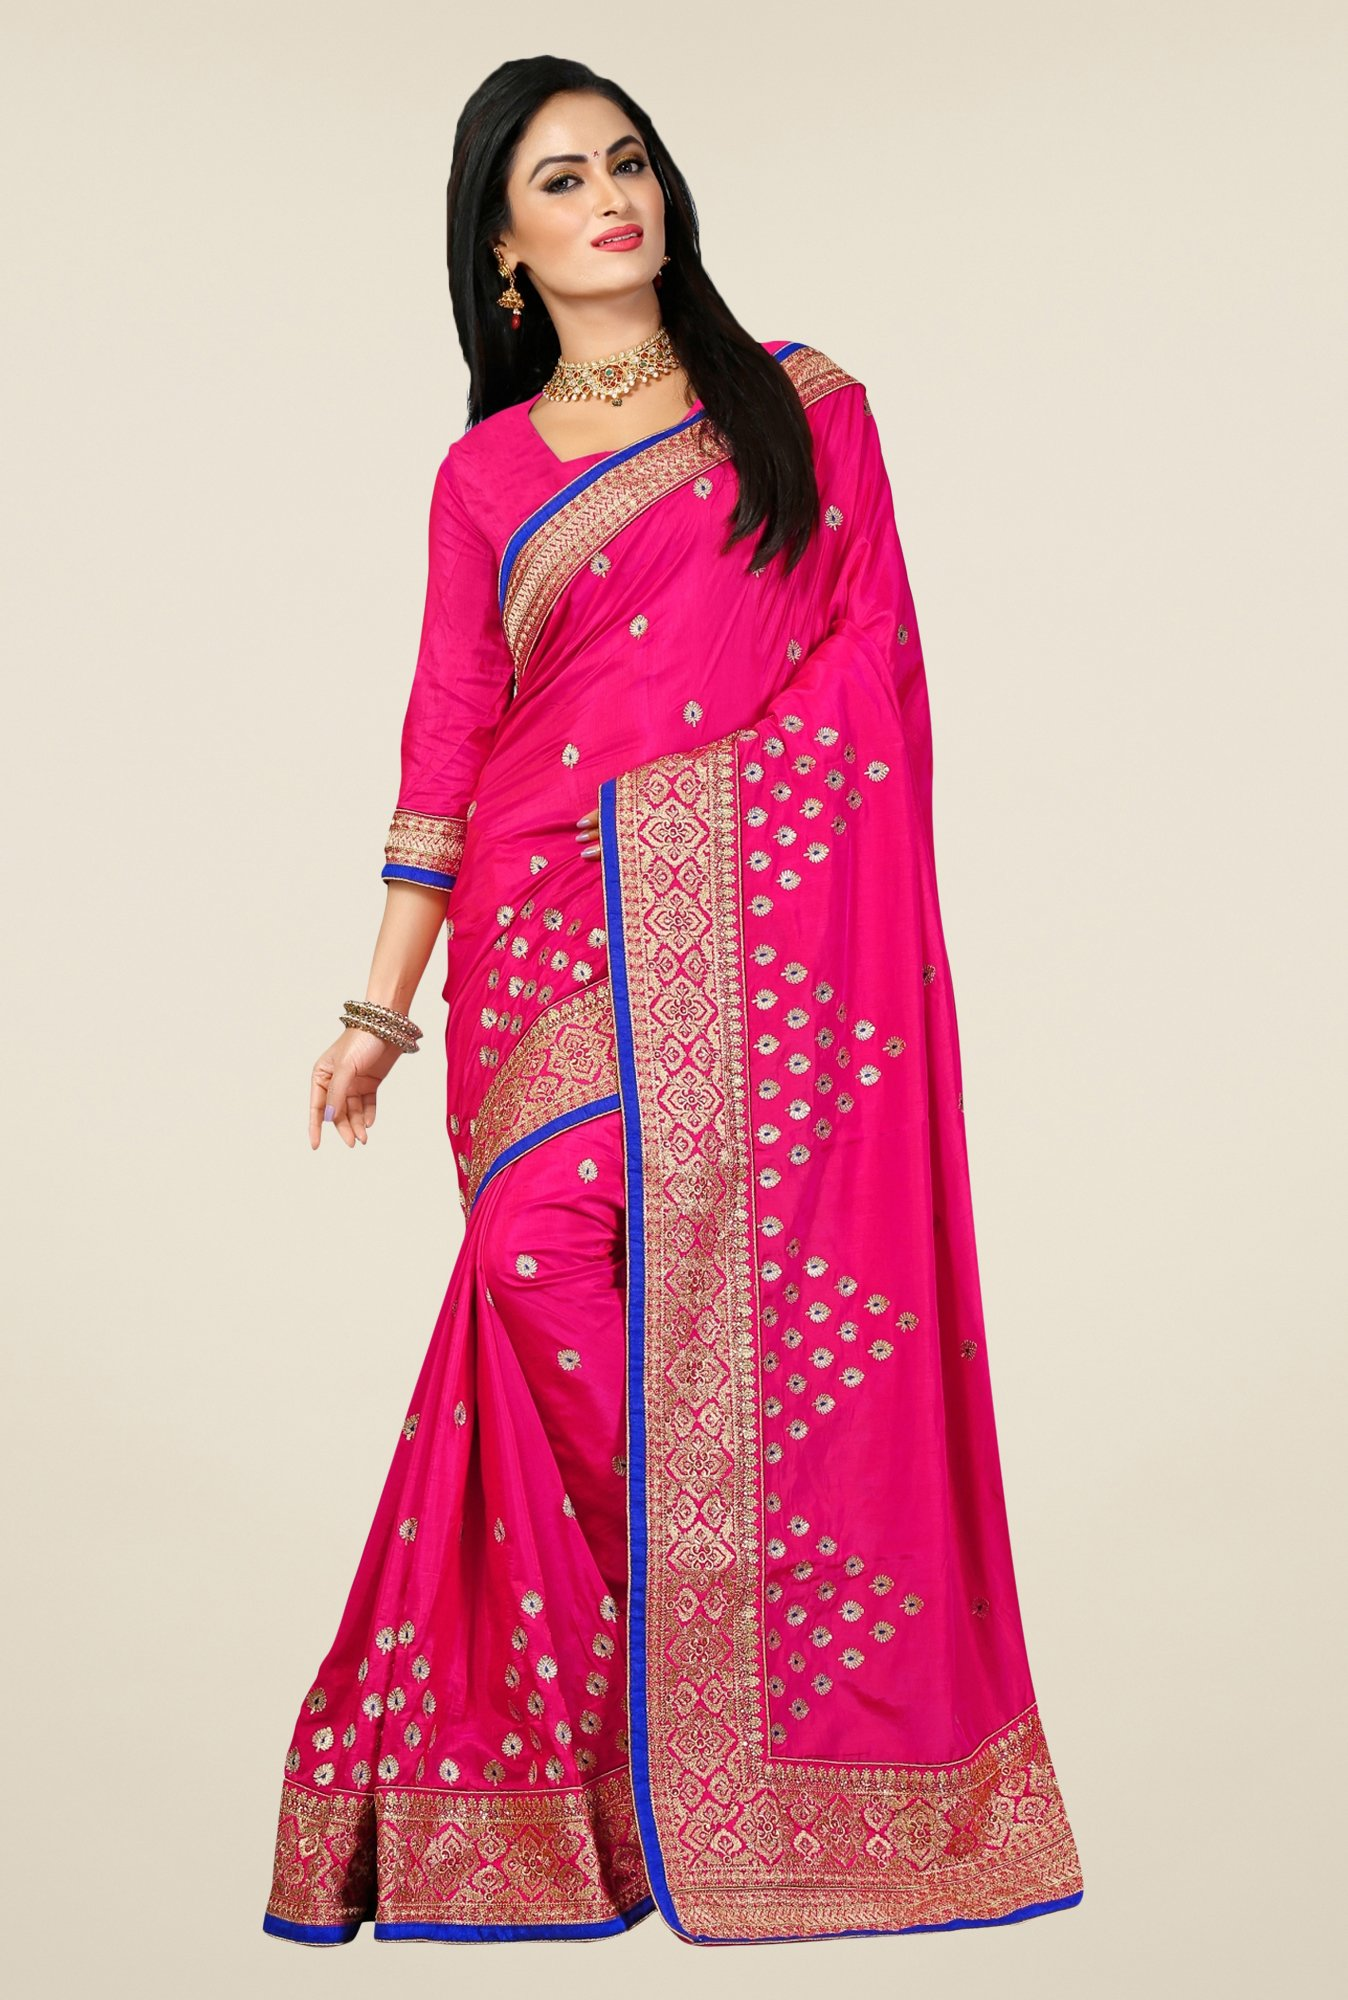 Triveni Pink Embroidered Bhagalpuri Silk Saree